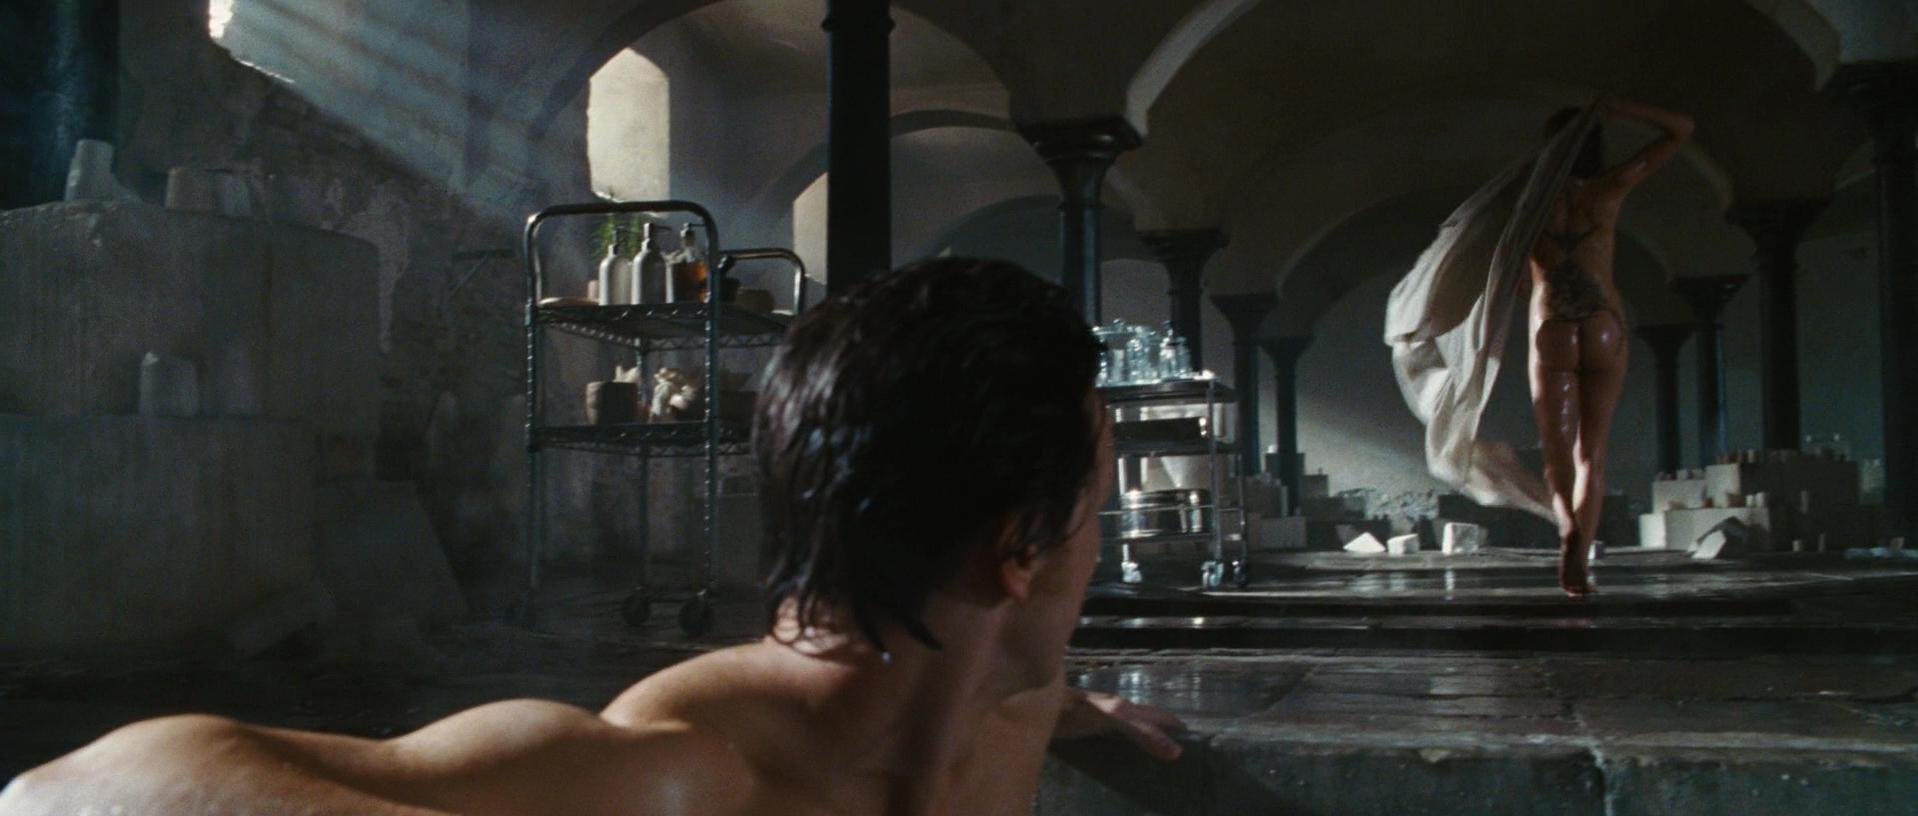 Angelina jolie naked pictures in wanted